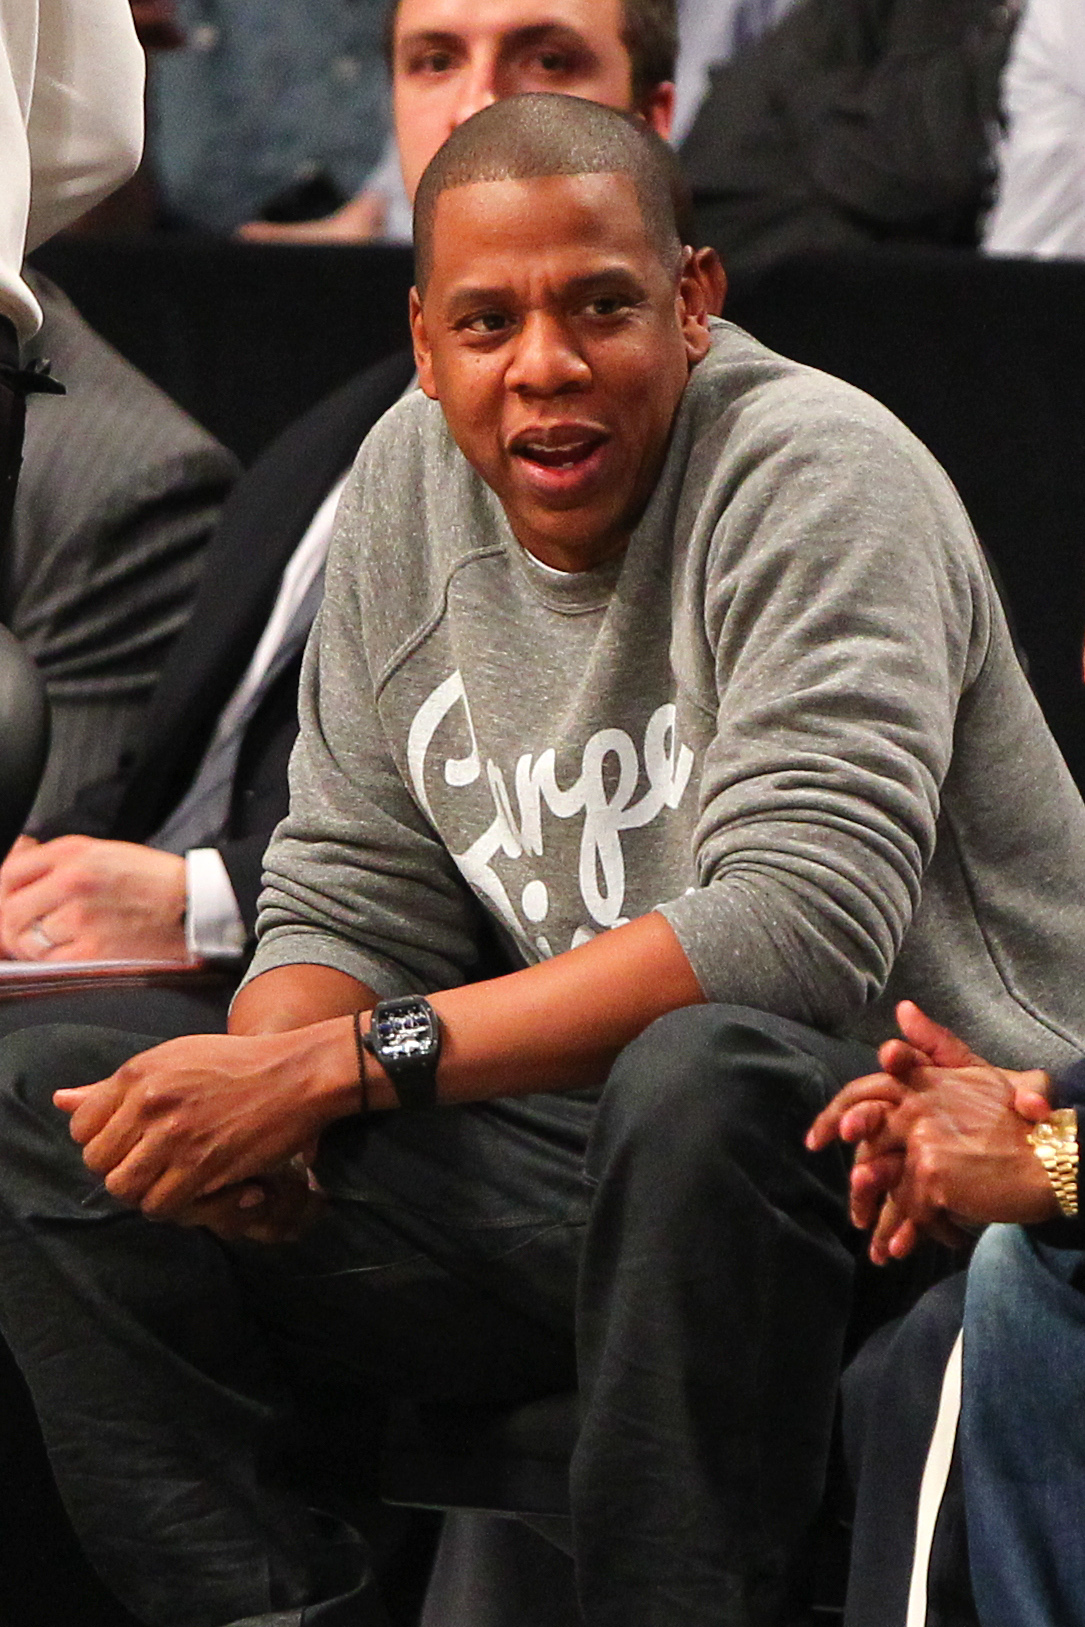 Jay-Z will have to divest his share of the Nets to become certified as an NBA agent. (USA Today Sports)